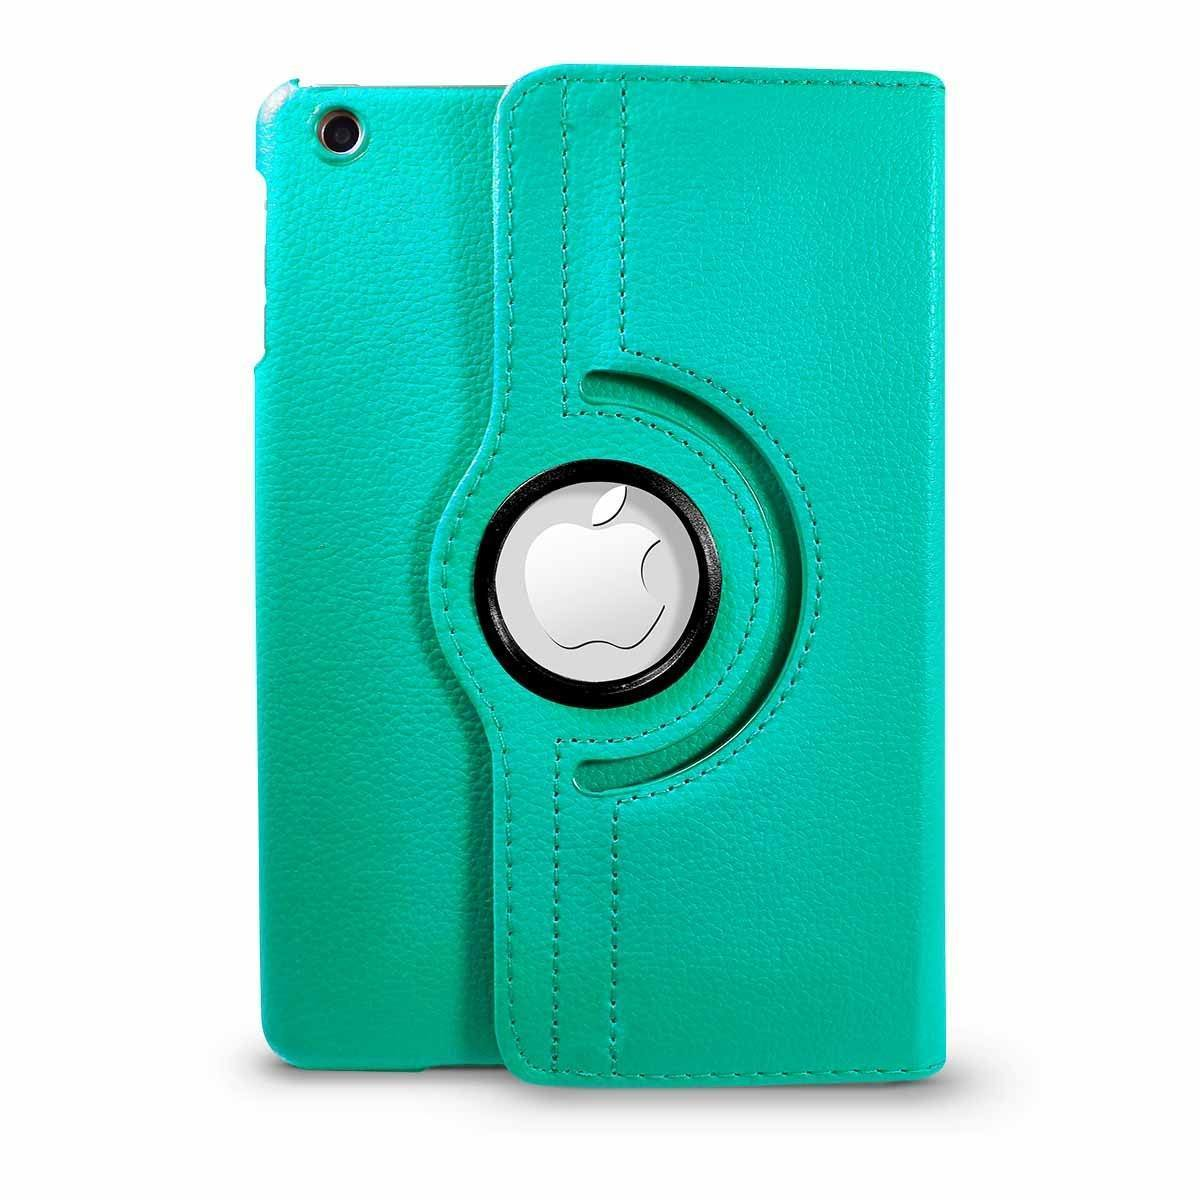 Rotate Case for iPad Mini 1/2/3 - Teal